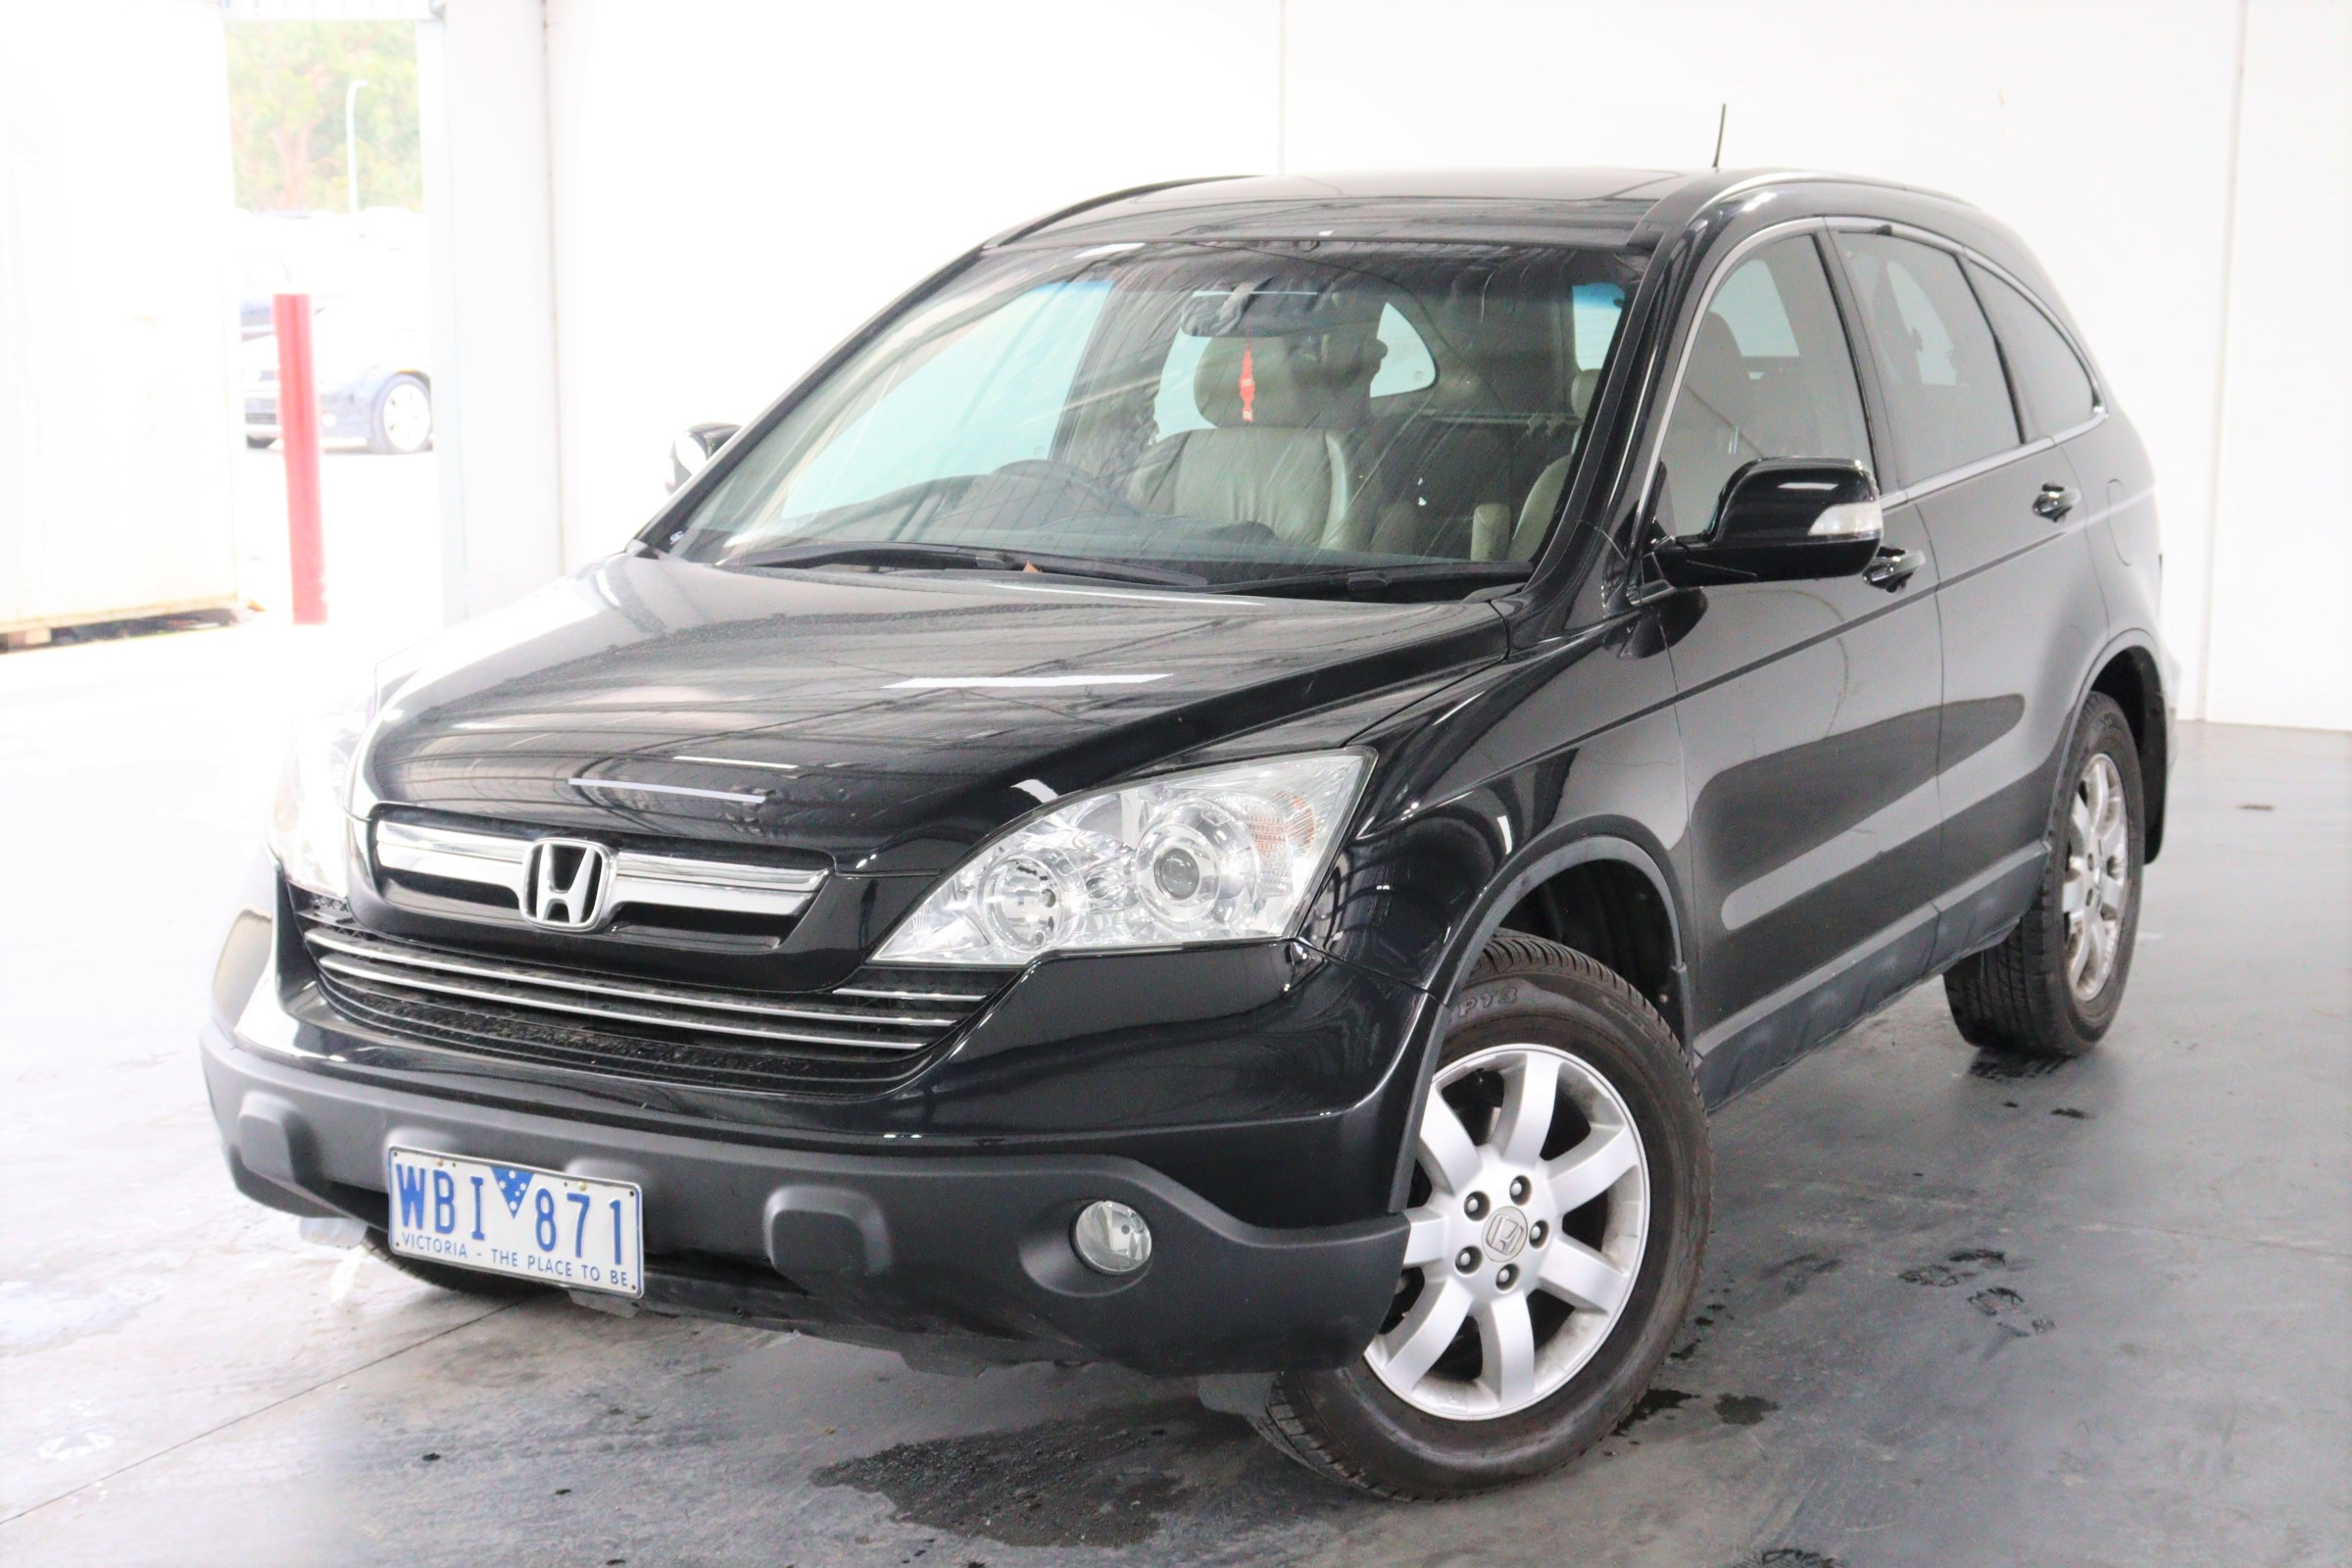 2007 Honda CR-V Luxury RE Automatic Wagon